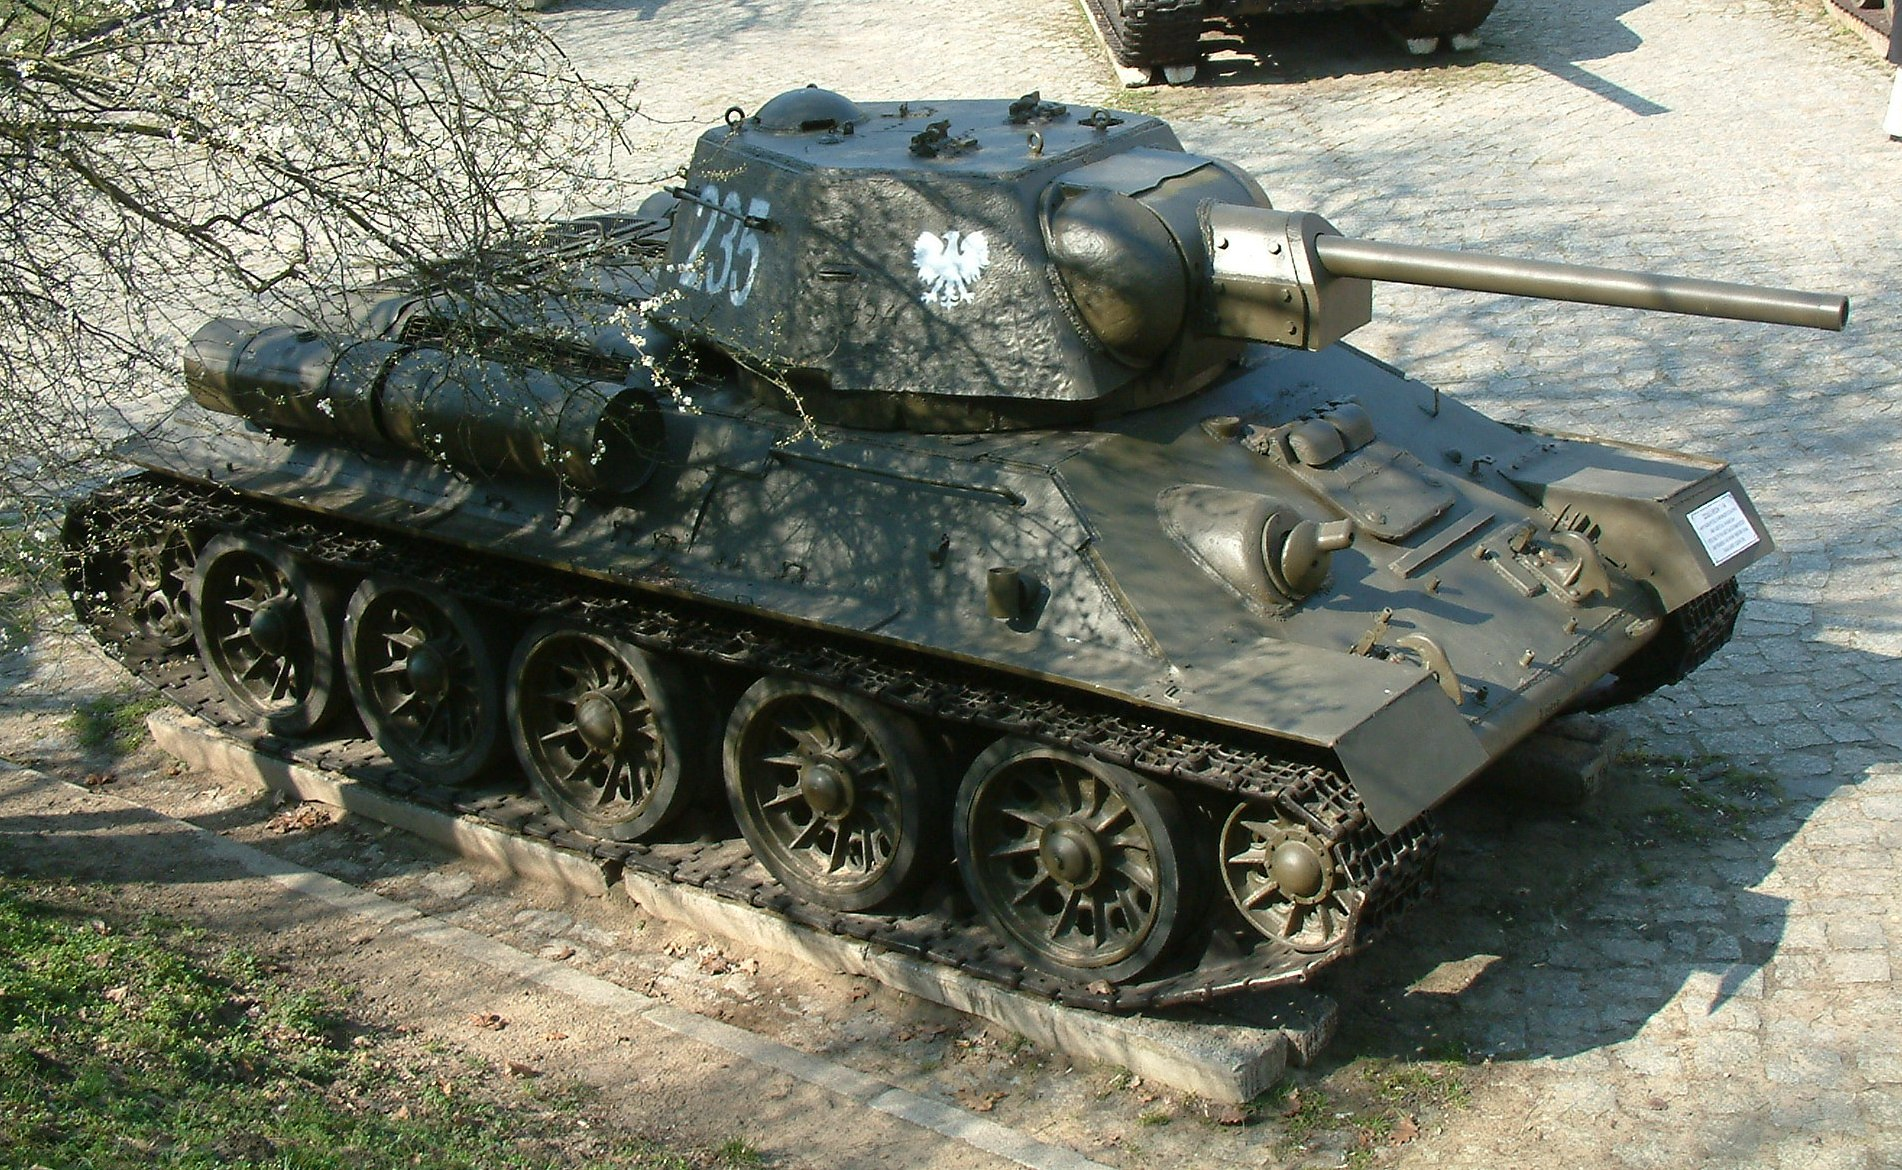 http://upload.wikimedia.org/wikipedia/commons/3/33/T-34-76_RB8.JPG